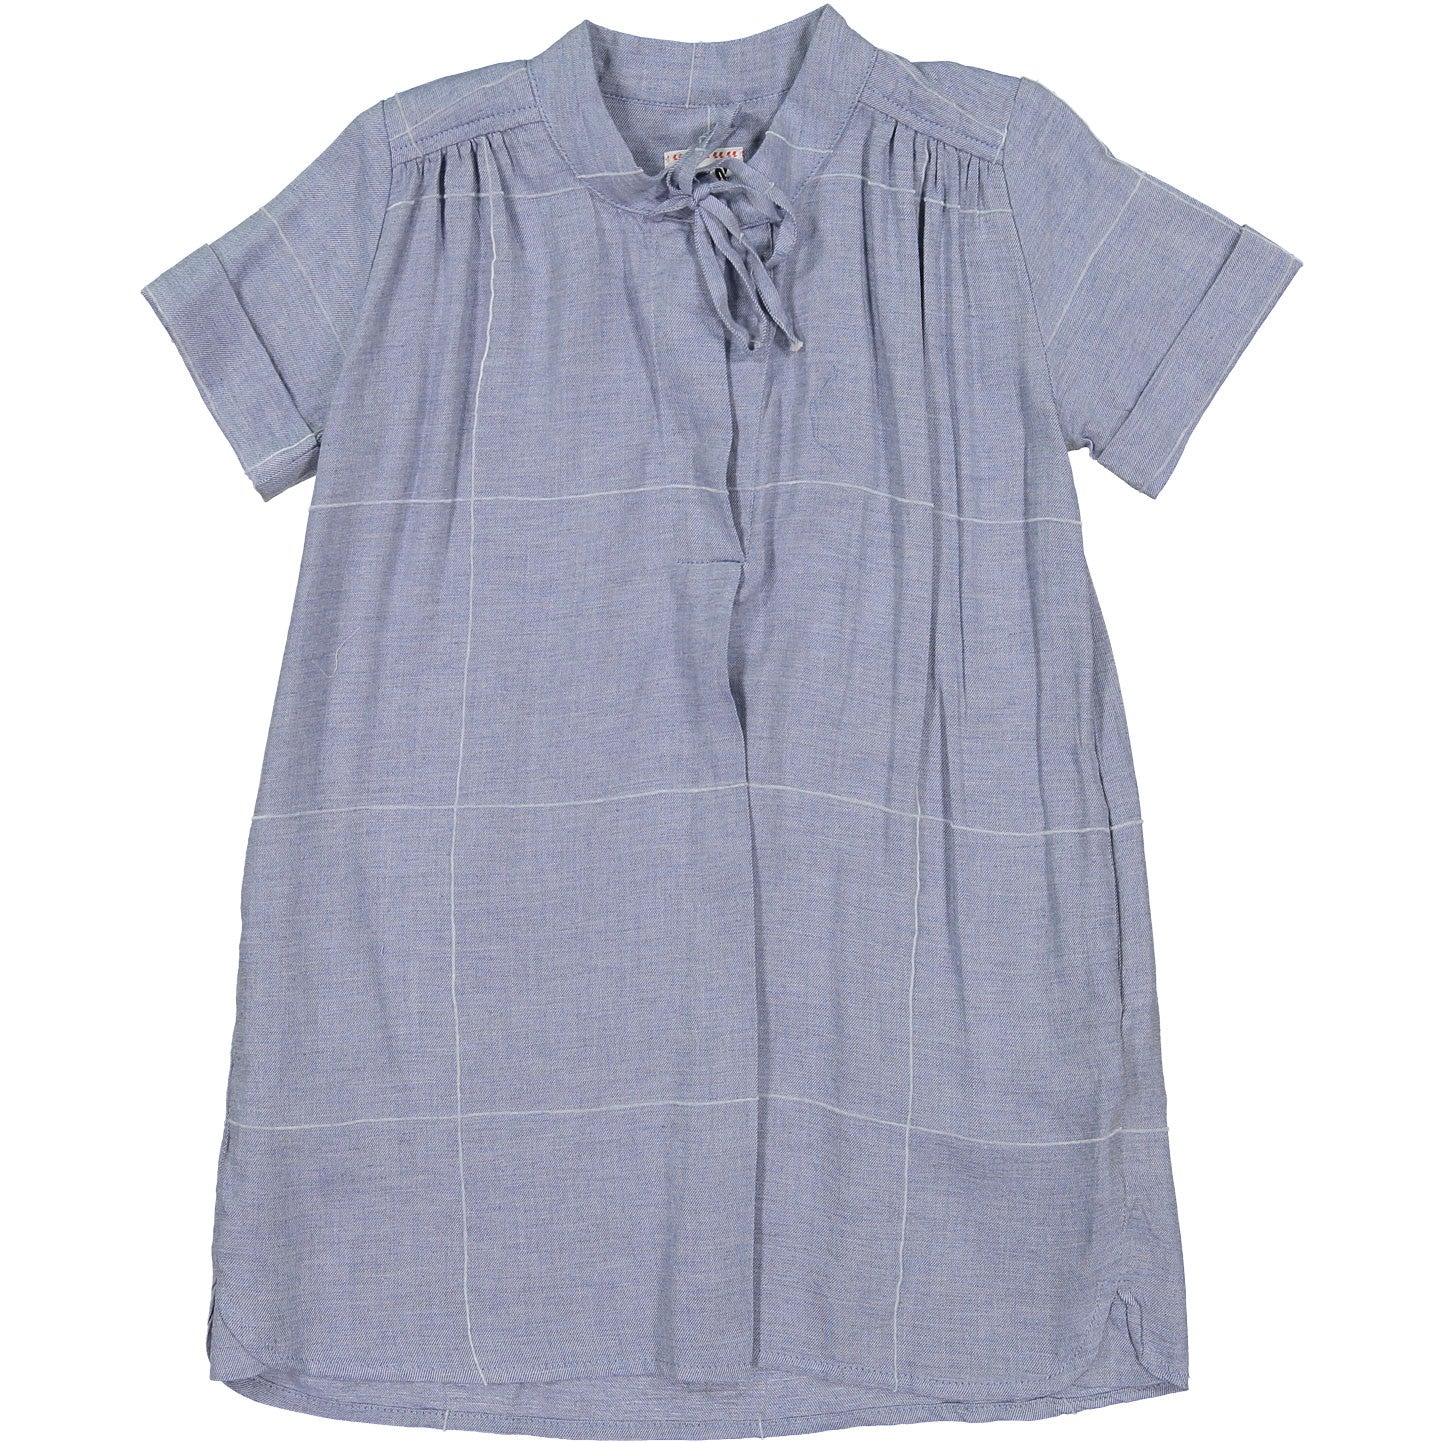 Morley Chambray Check Finn Dress - Ladida